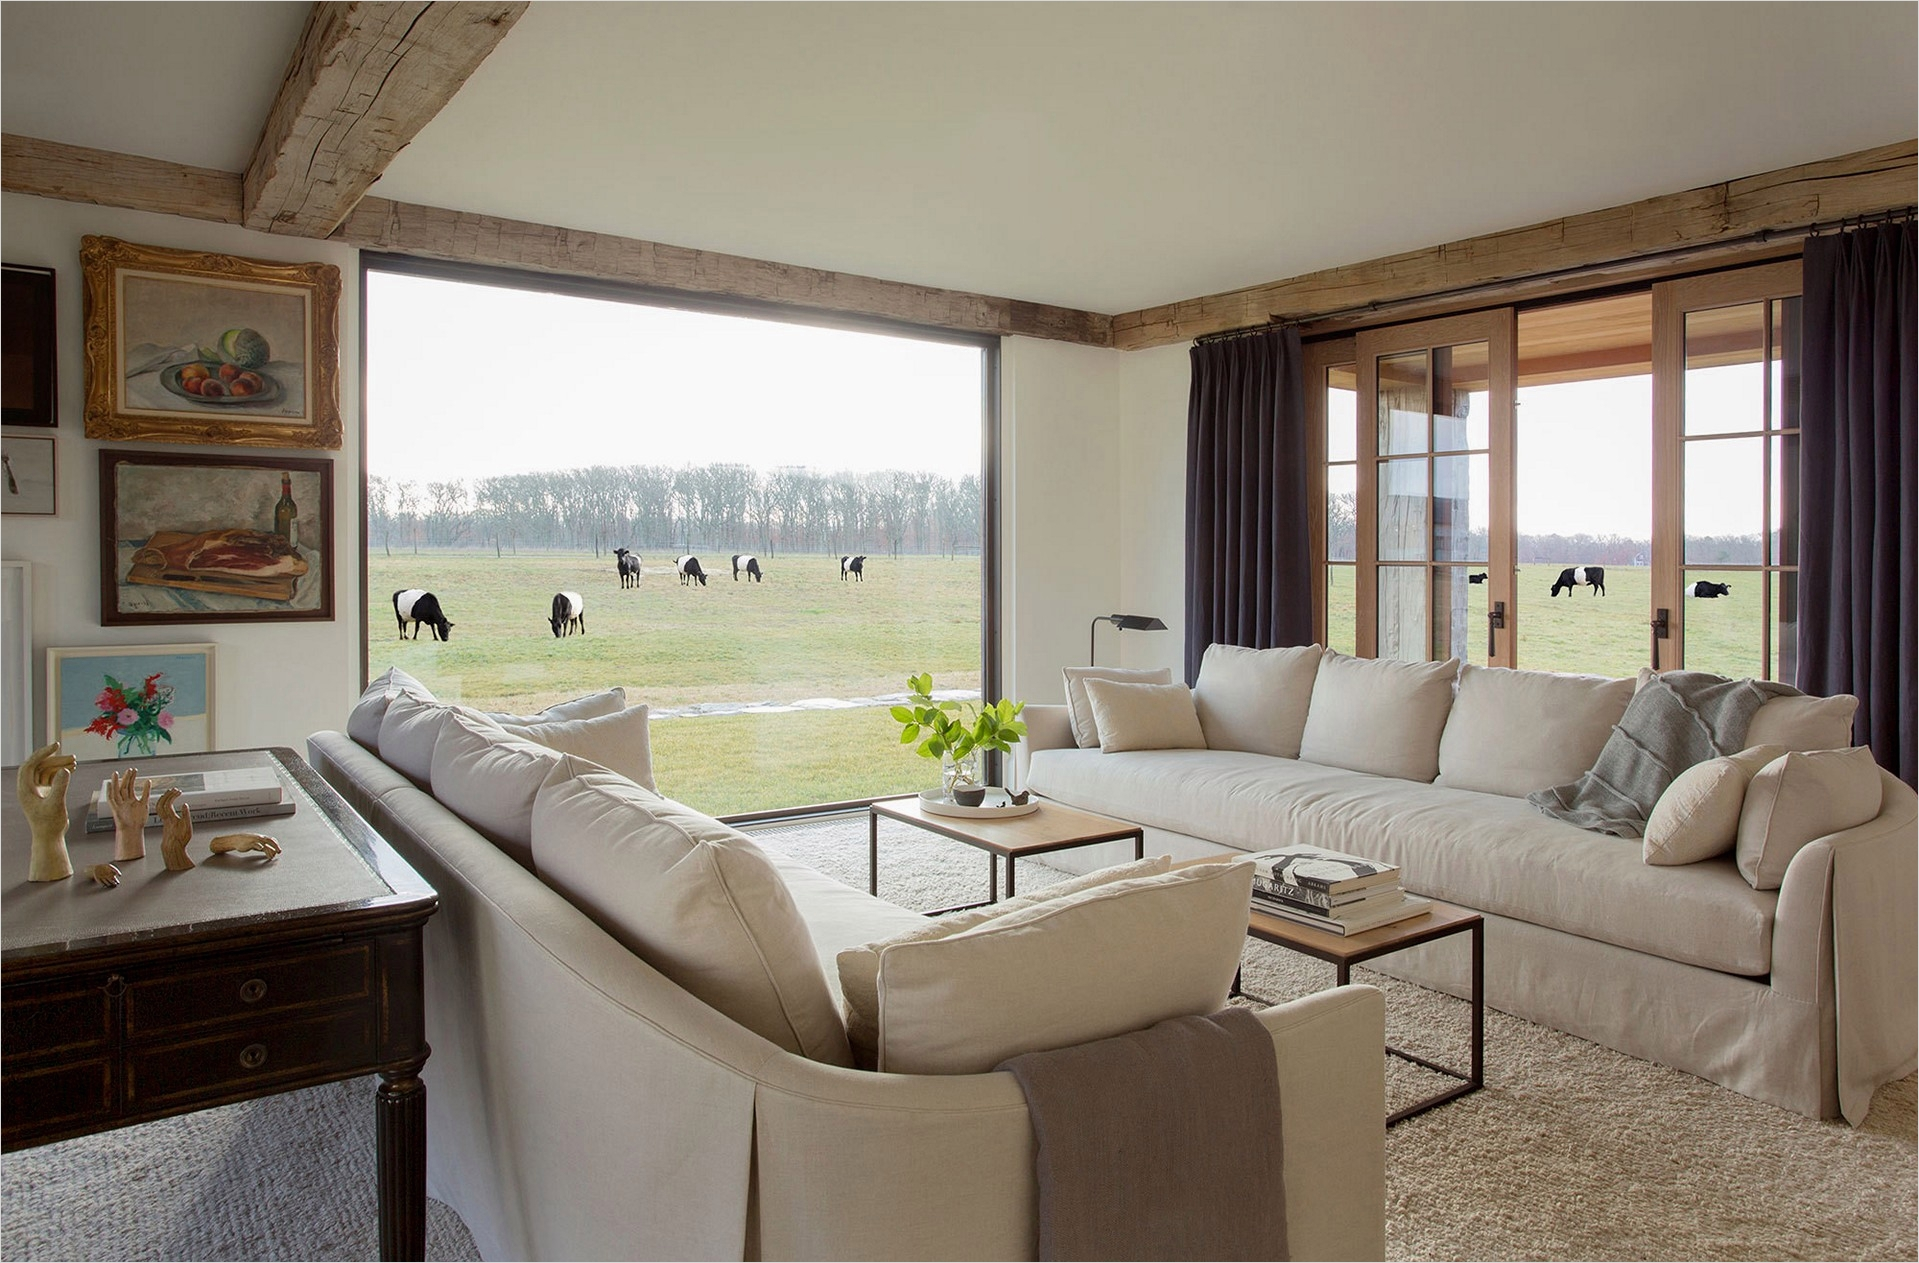 Modern Farmhouse Living Room Decor 94 4 Warm and Luxurious Modern Farmhouse Decor Ideas 6